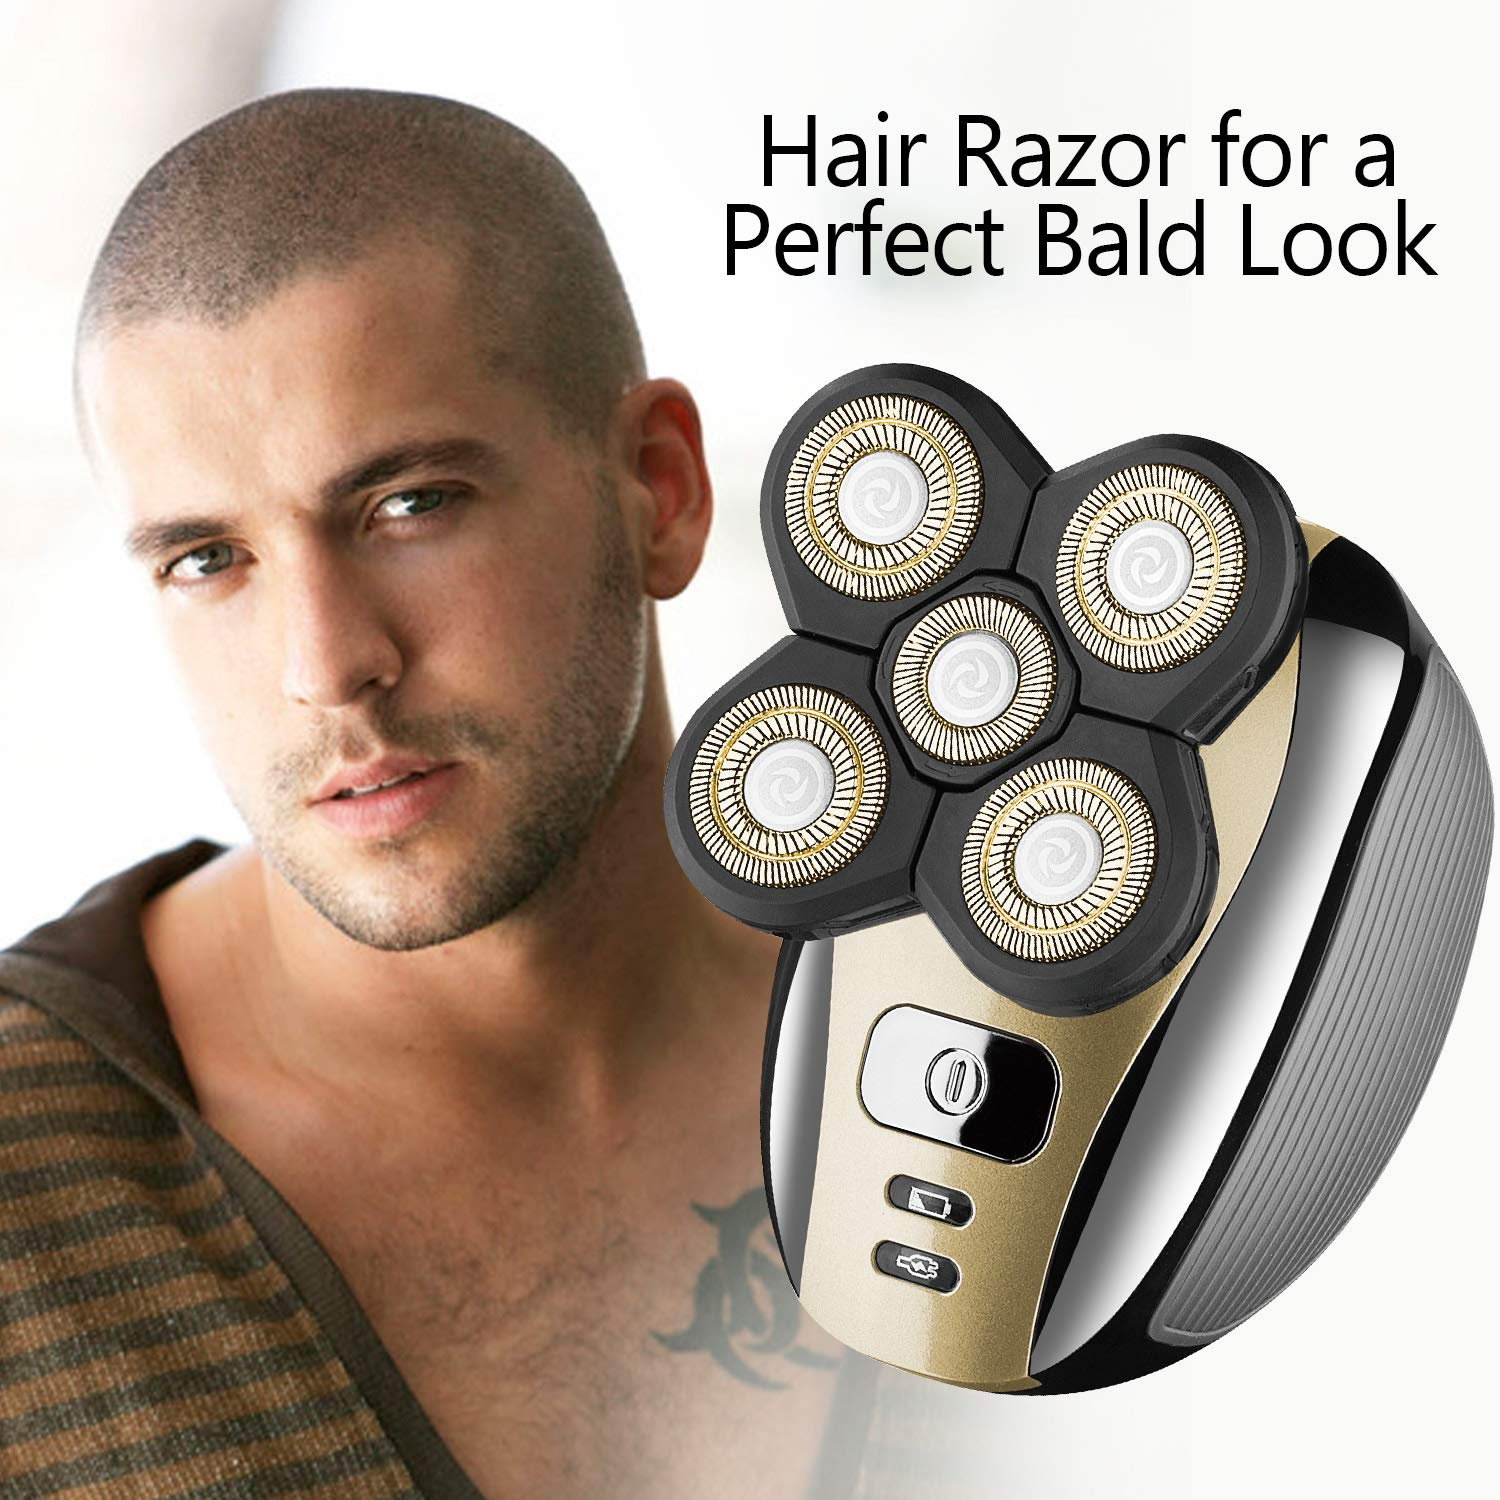 Men's Electric Razor Bald Head Shaver, Cordless Waterproof 5 In 1 Grooming Kit